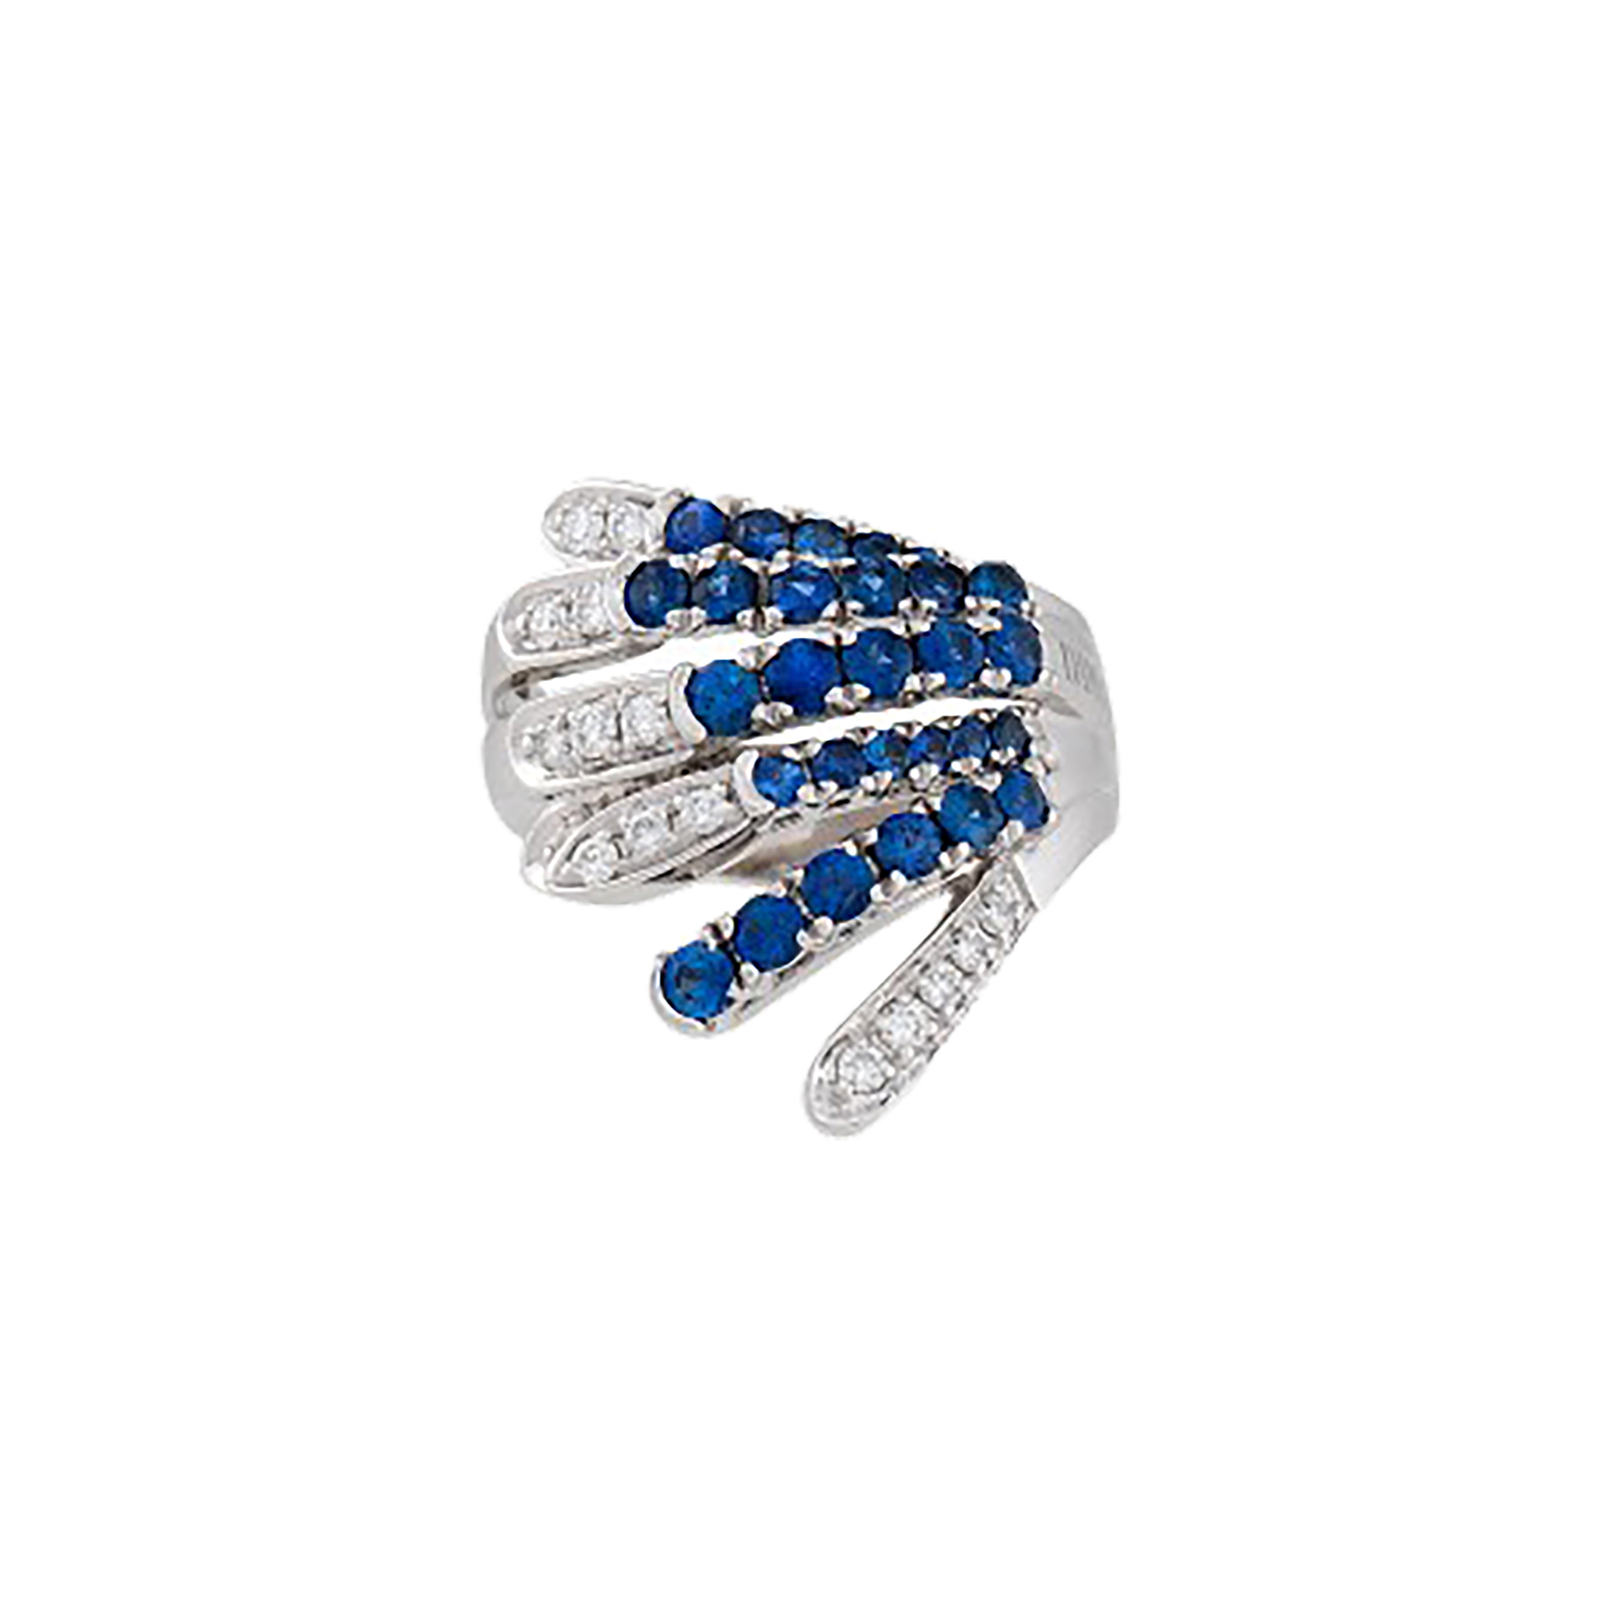 Damiani 18ct White Gold 0.35cttw Diamond and Sapphire Ring - Ring Size O